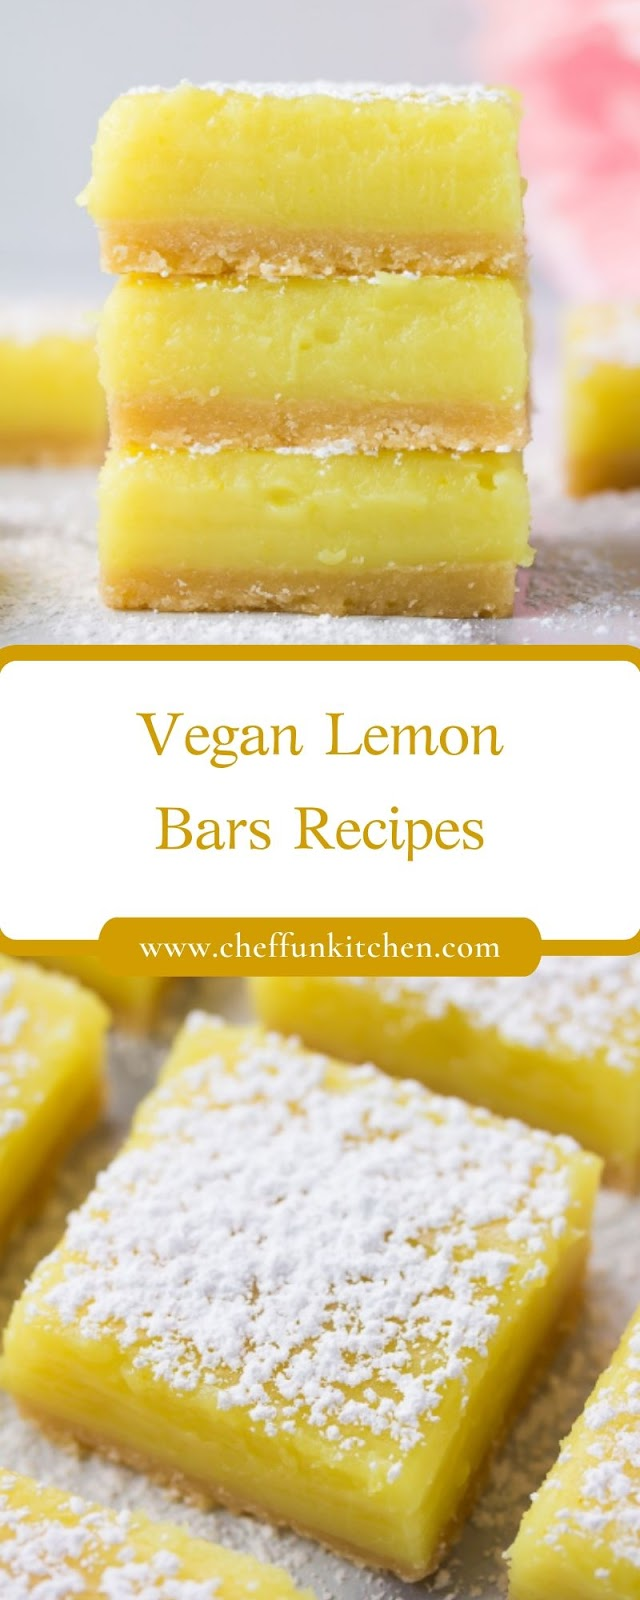 Vegan Lemon Bars Recipes